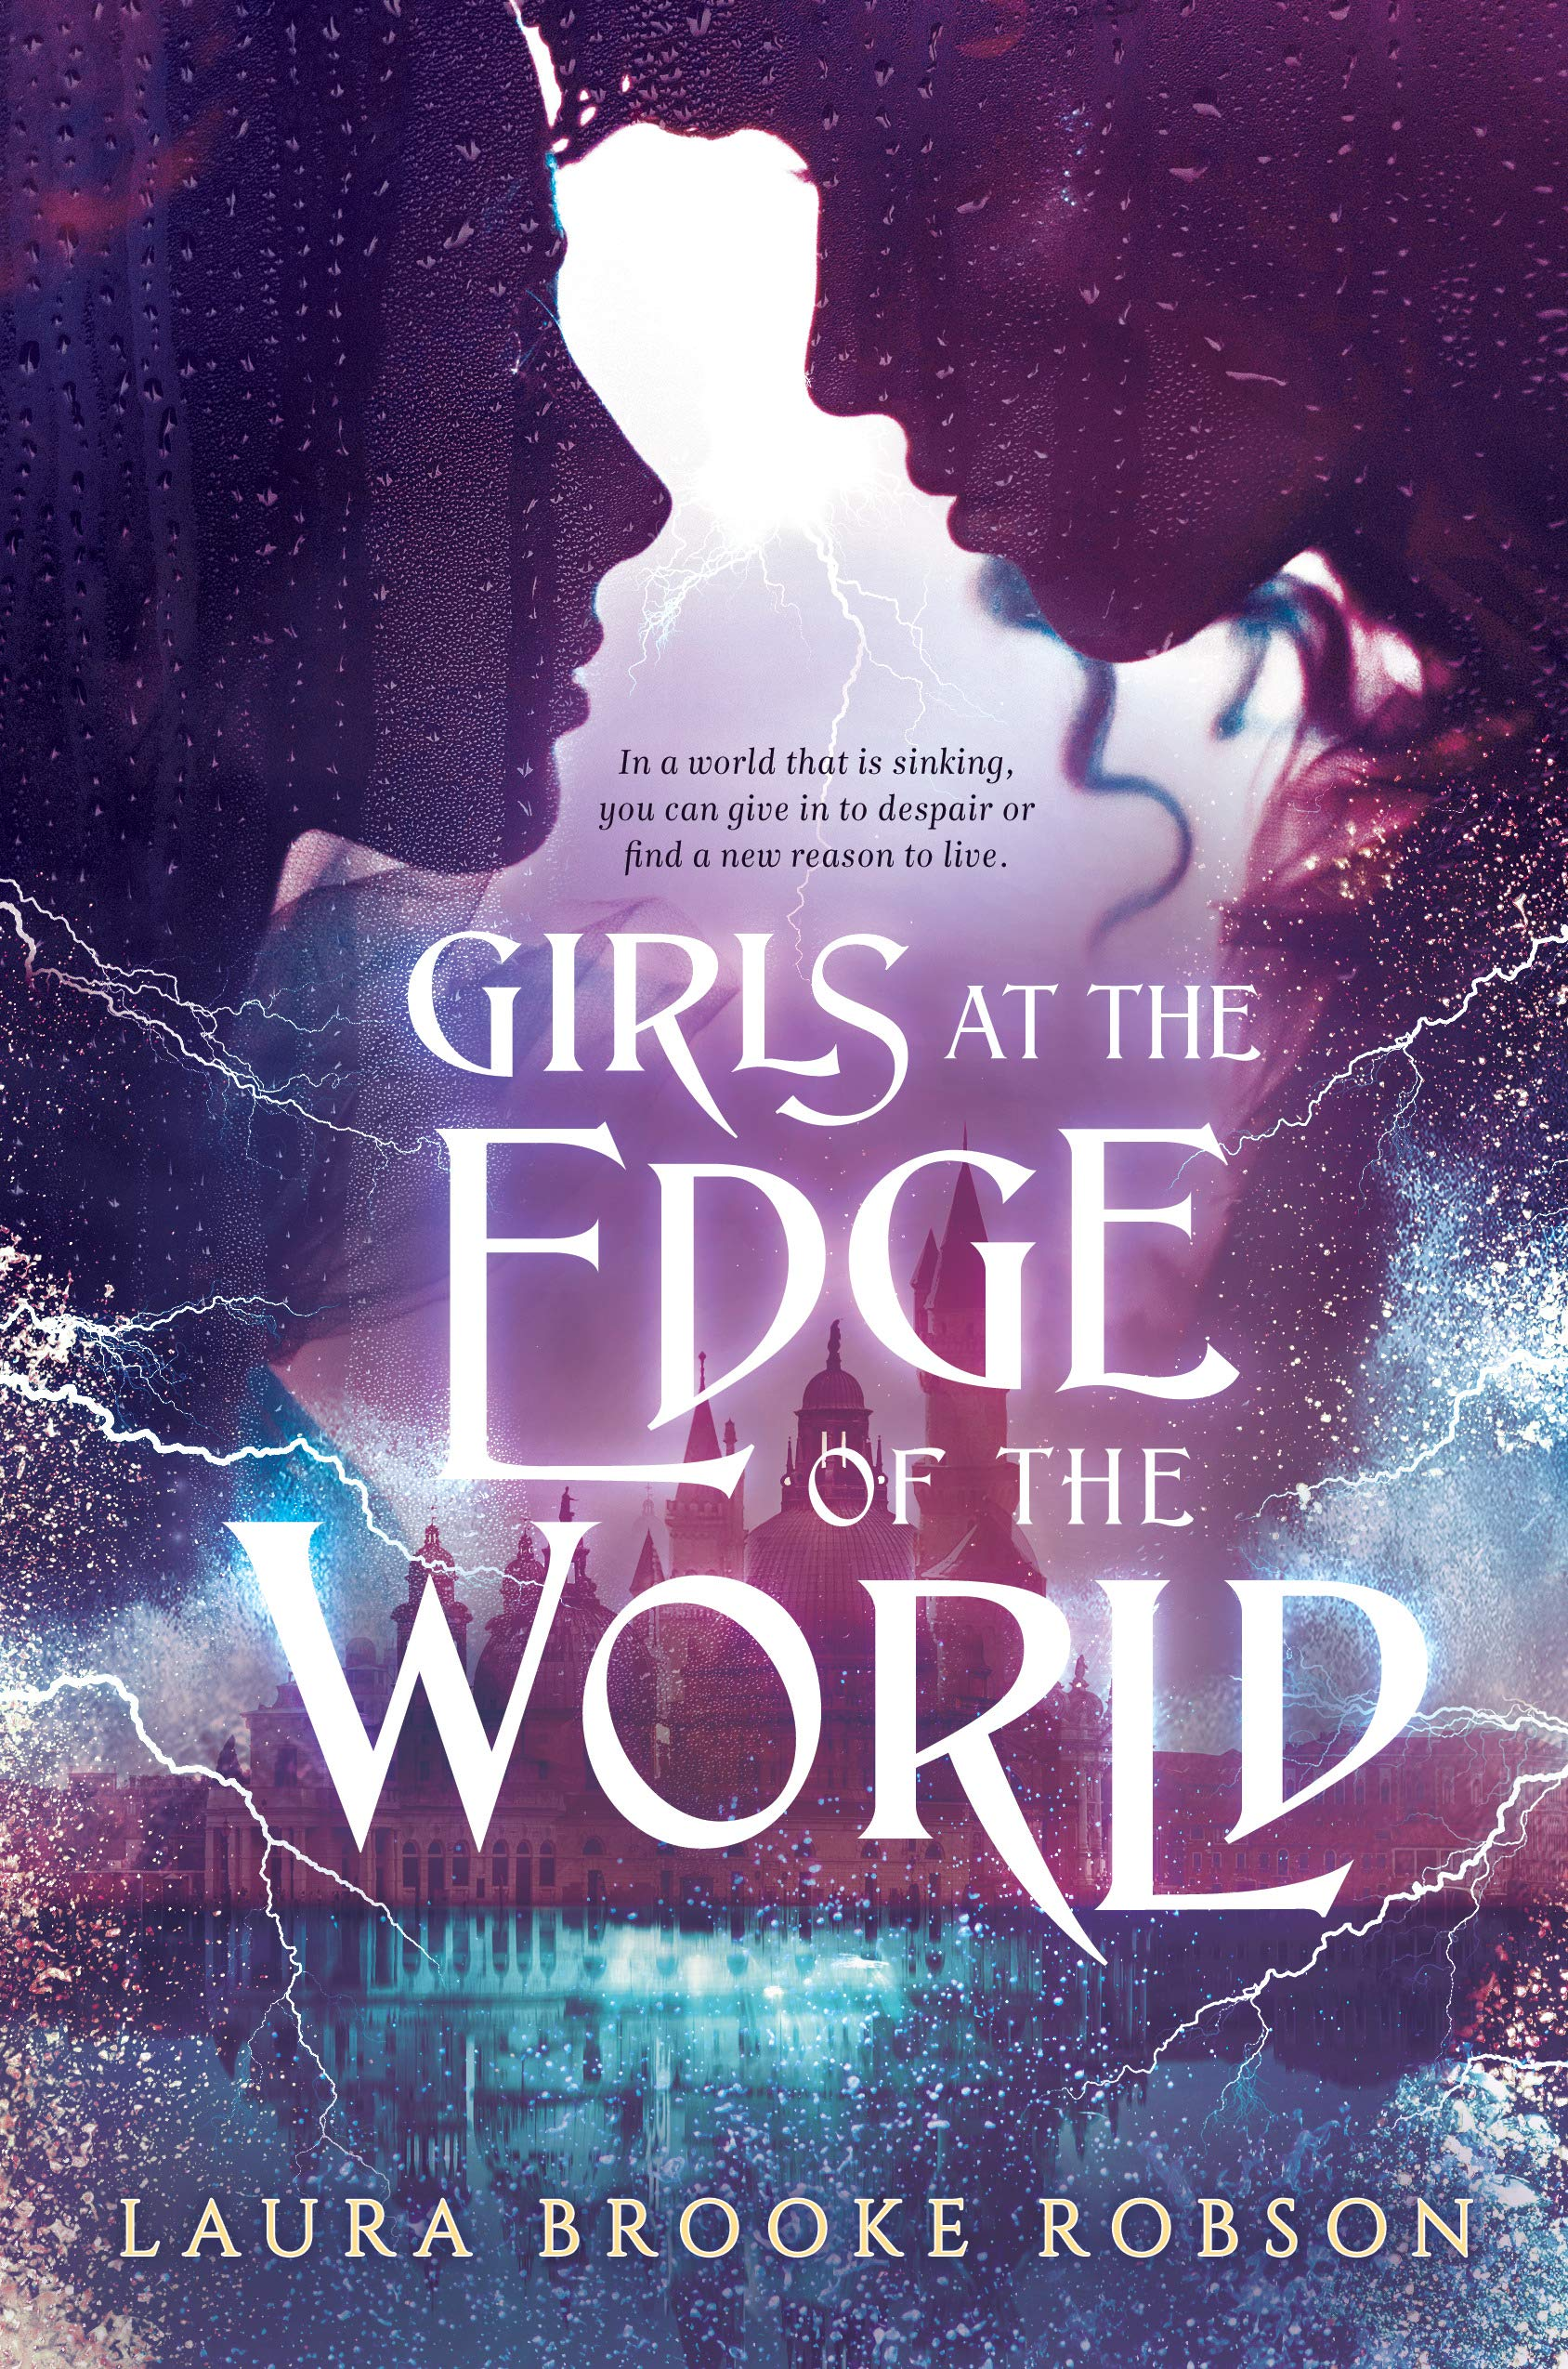 Amazon.com: Girls at the Edge of the World: 9780525554035: Robson, Laura  Brooke: Books